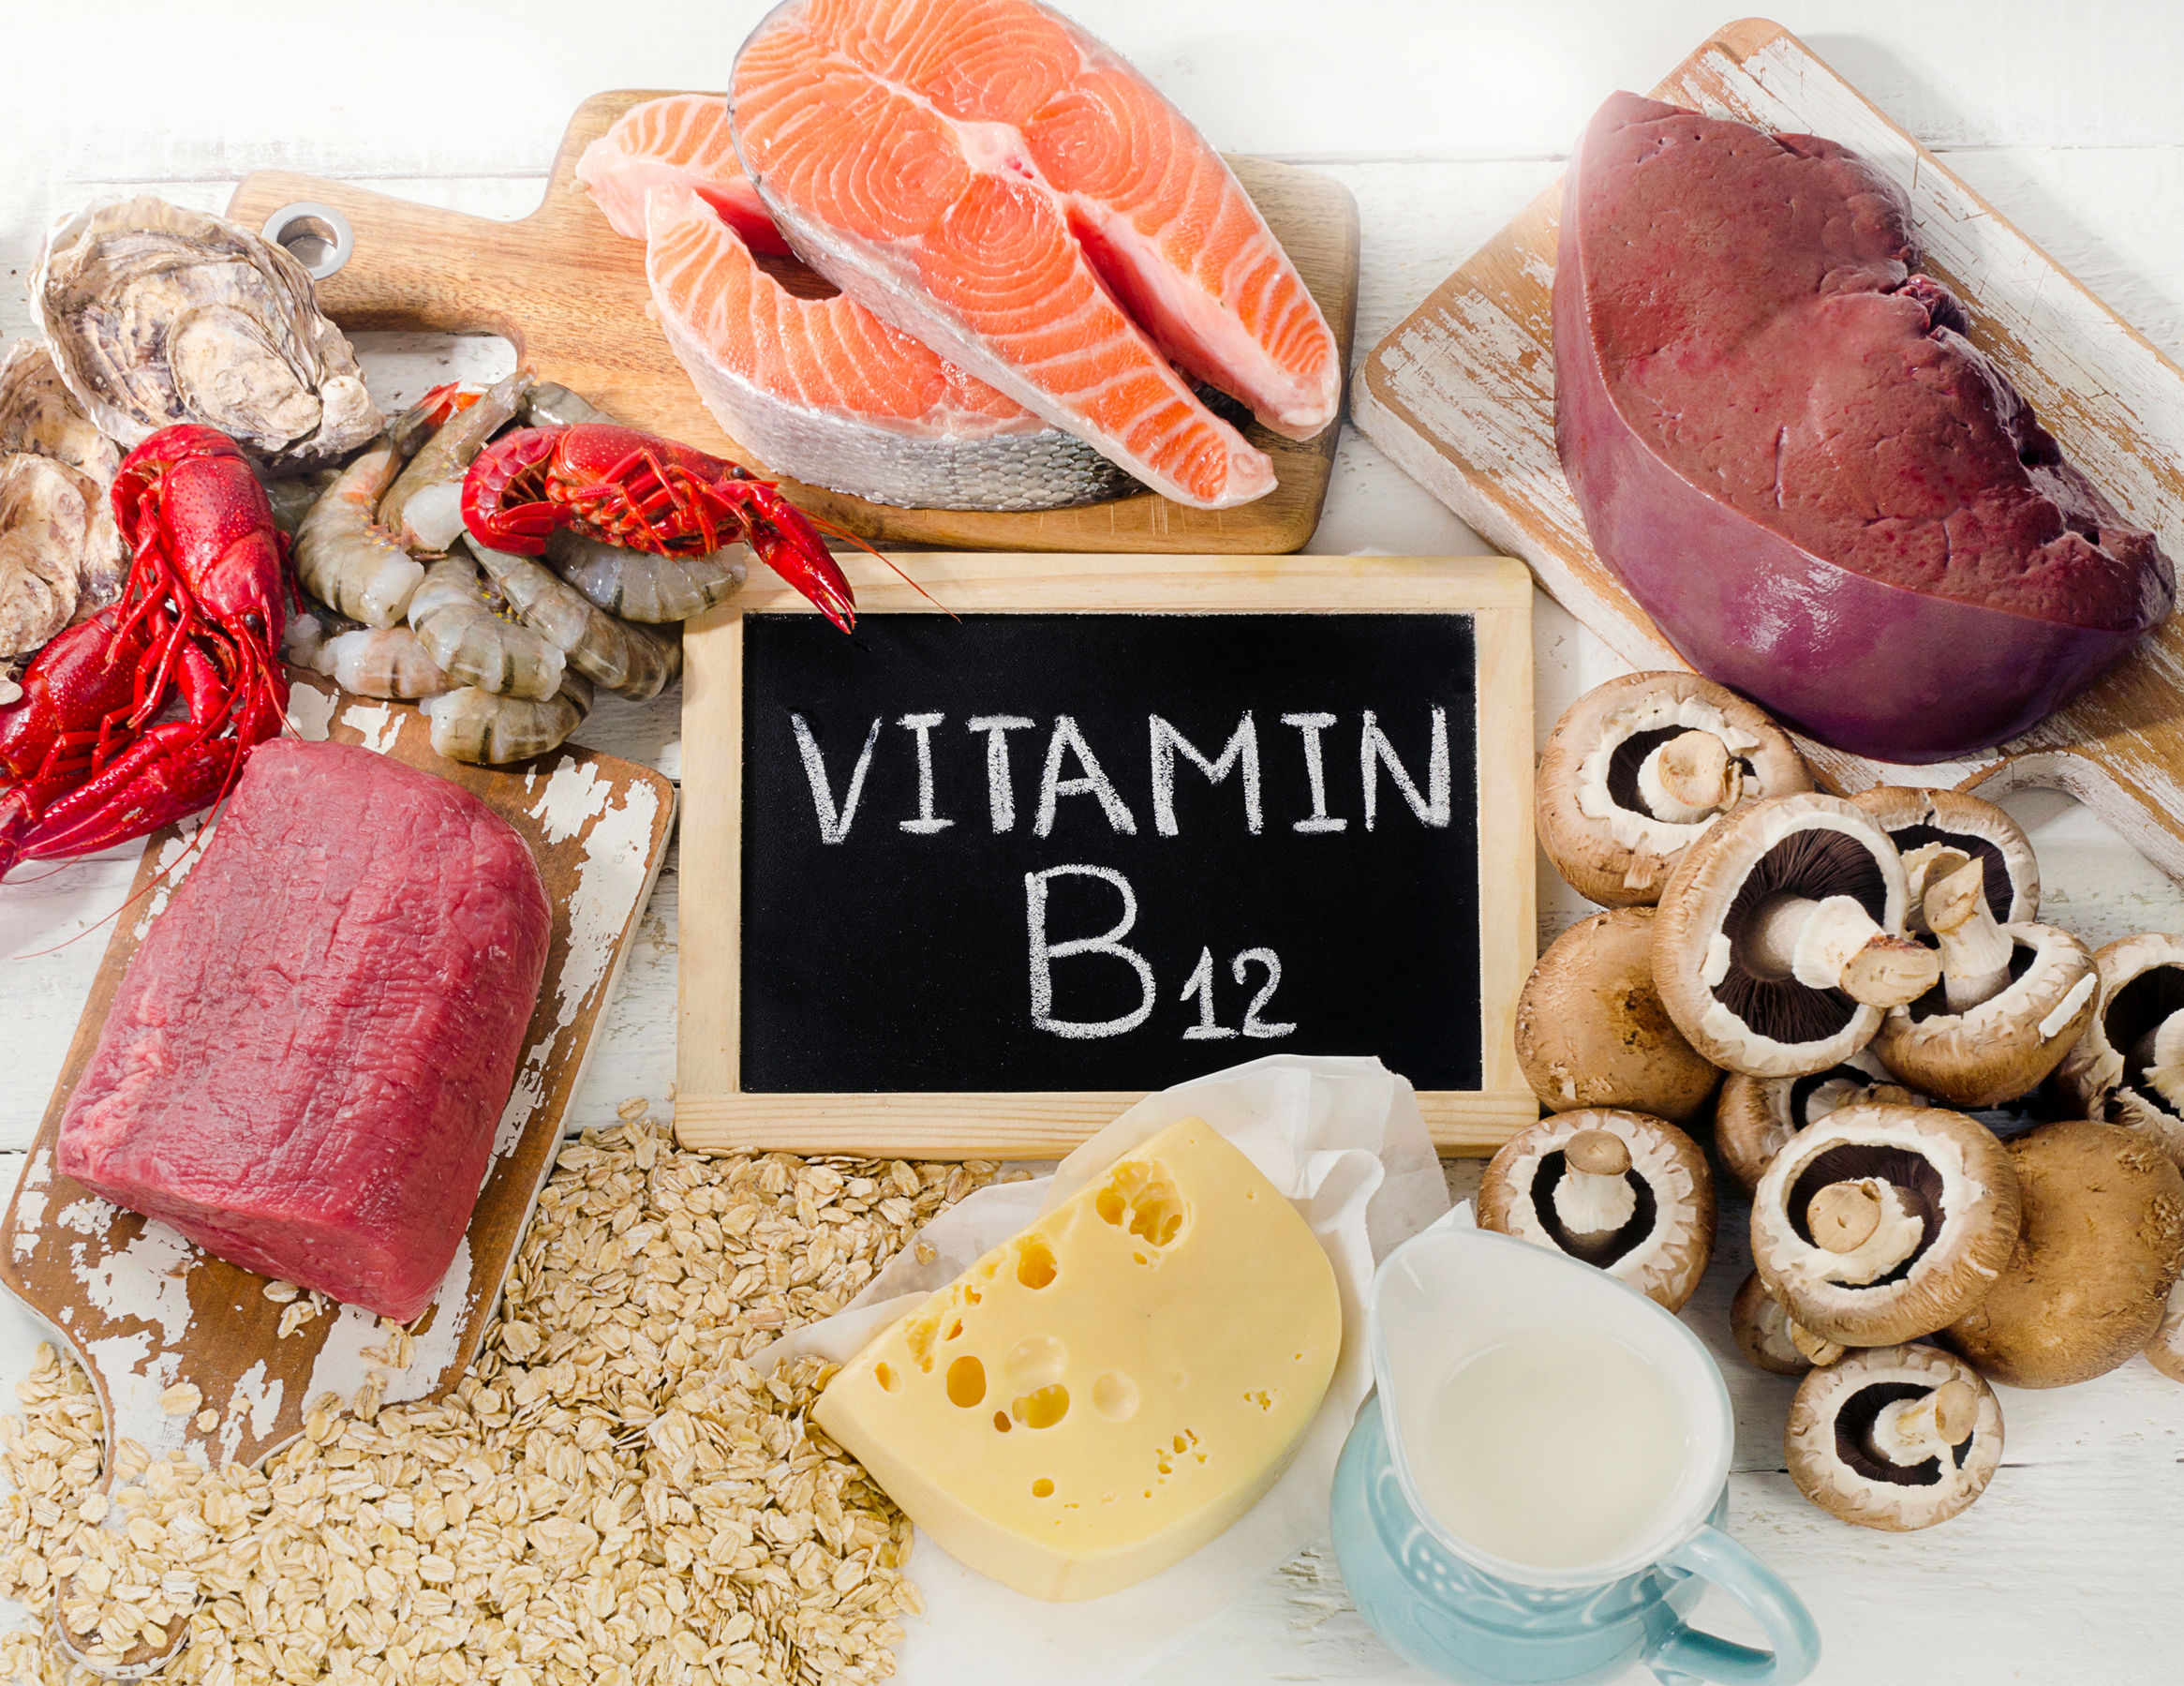 Vitamin B12 Deficiency: A How-To Guide to Prevent It